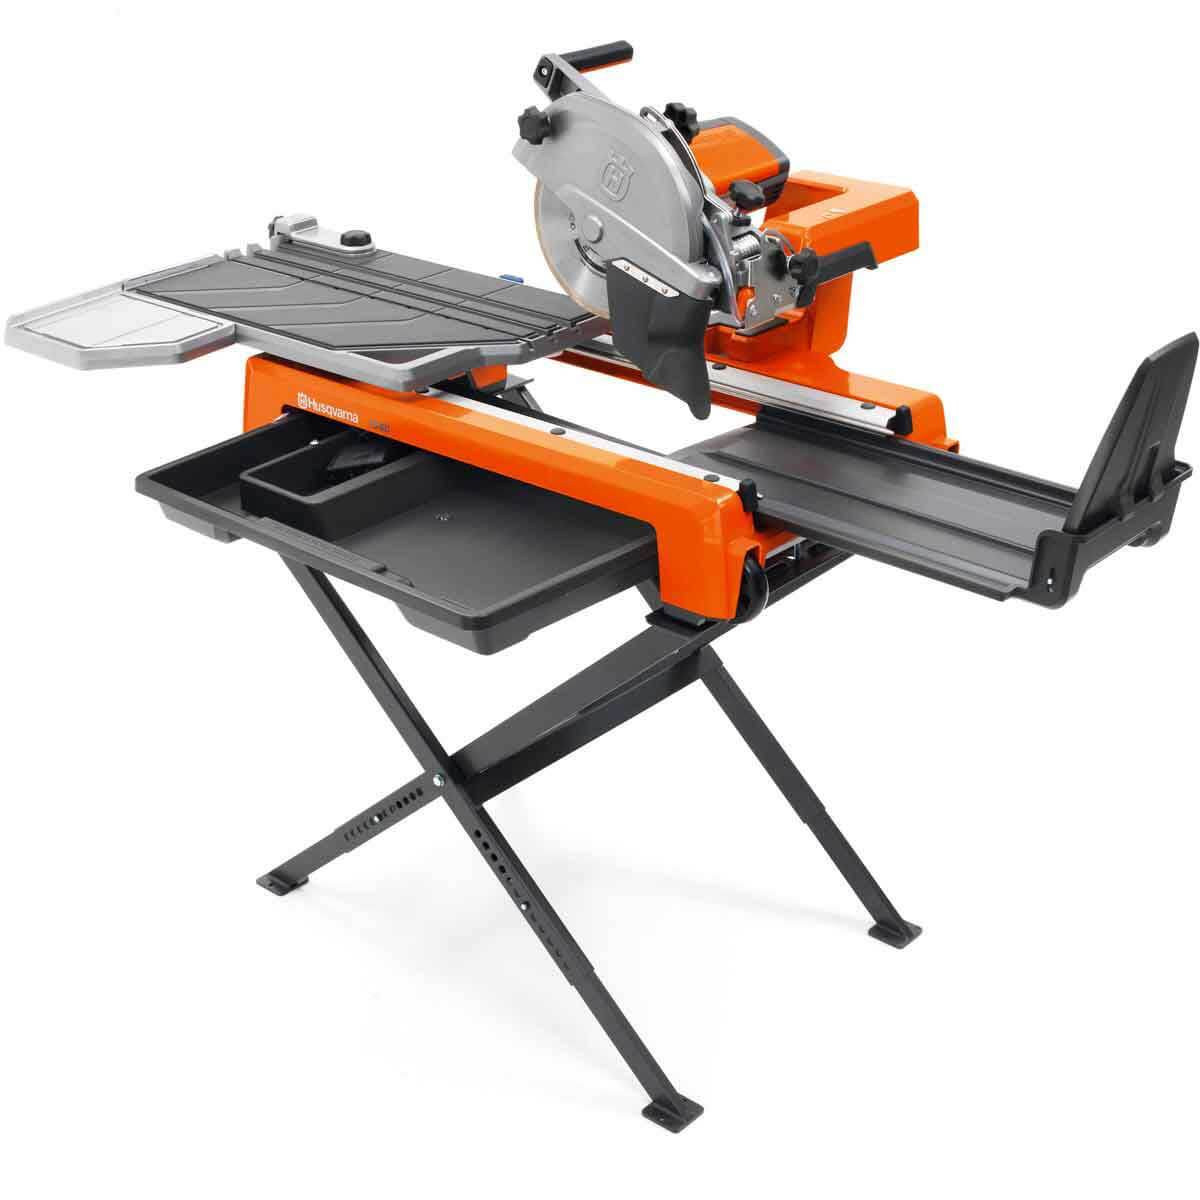 Husqvarna TS 60 tile saw with extension table and splash guard